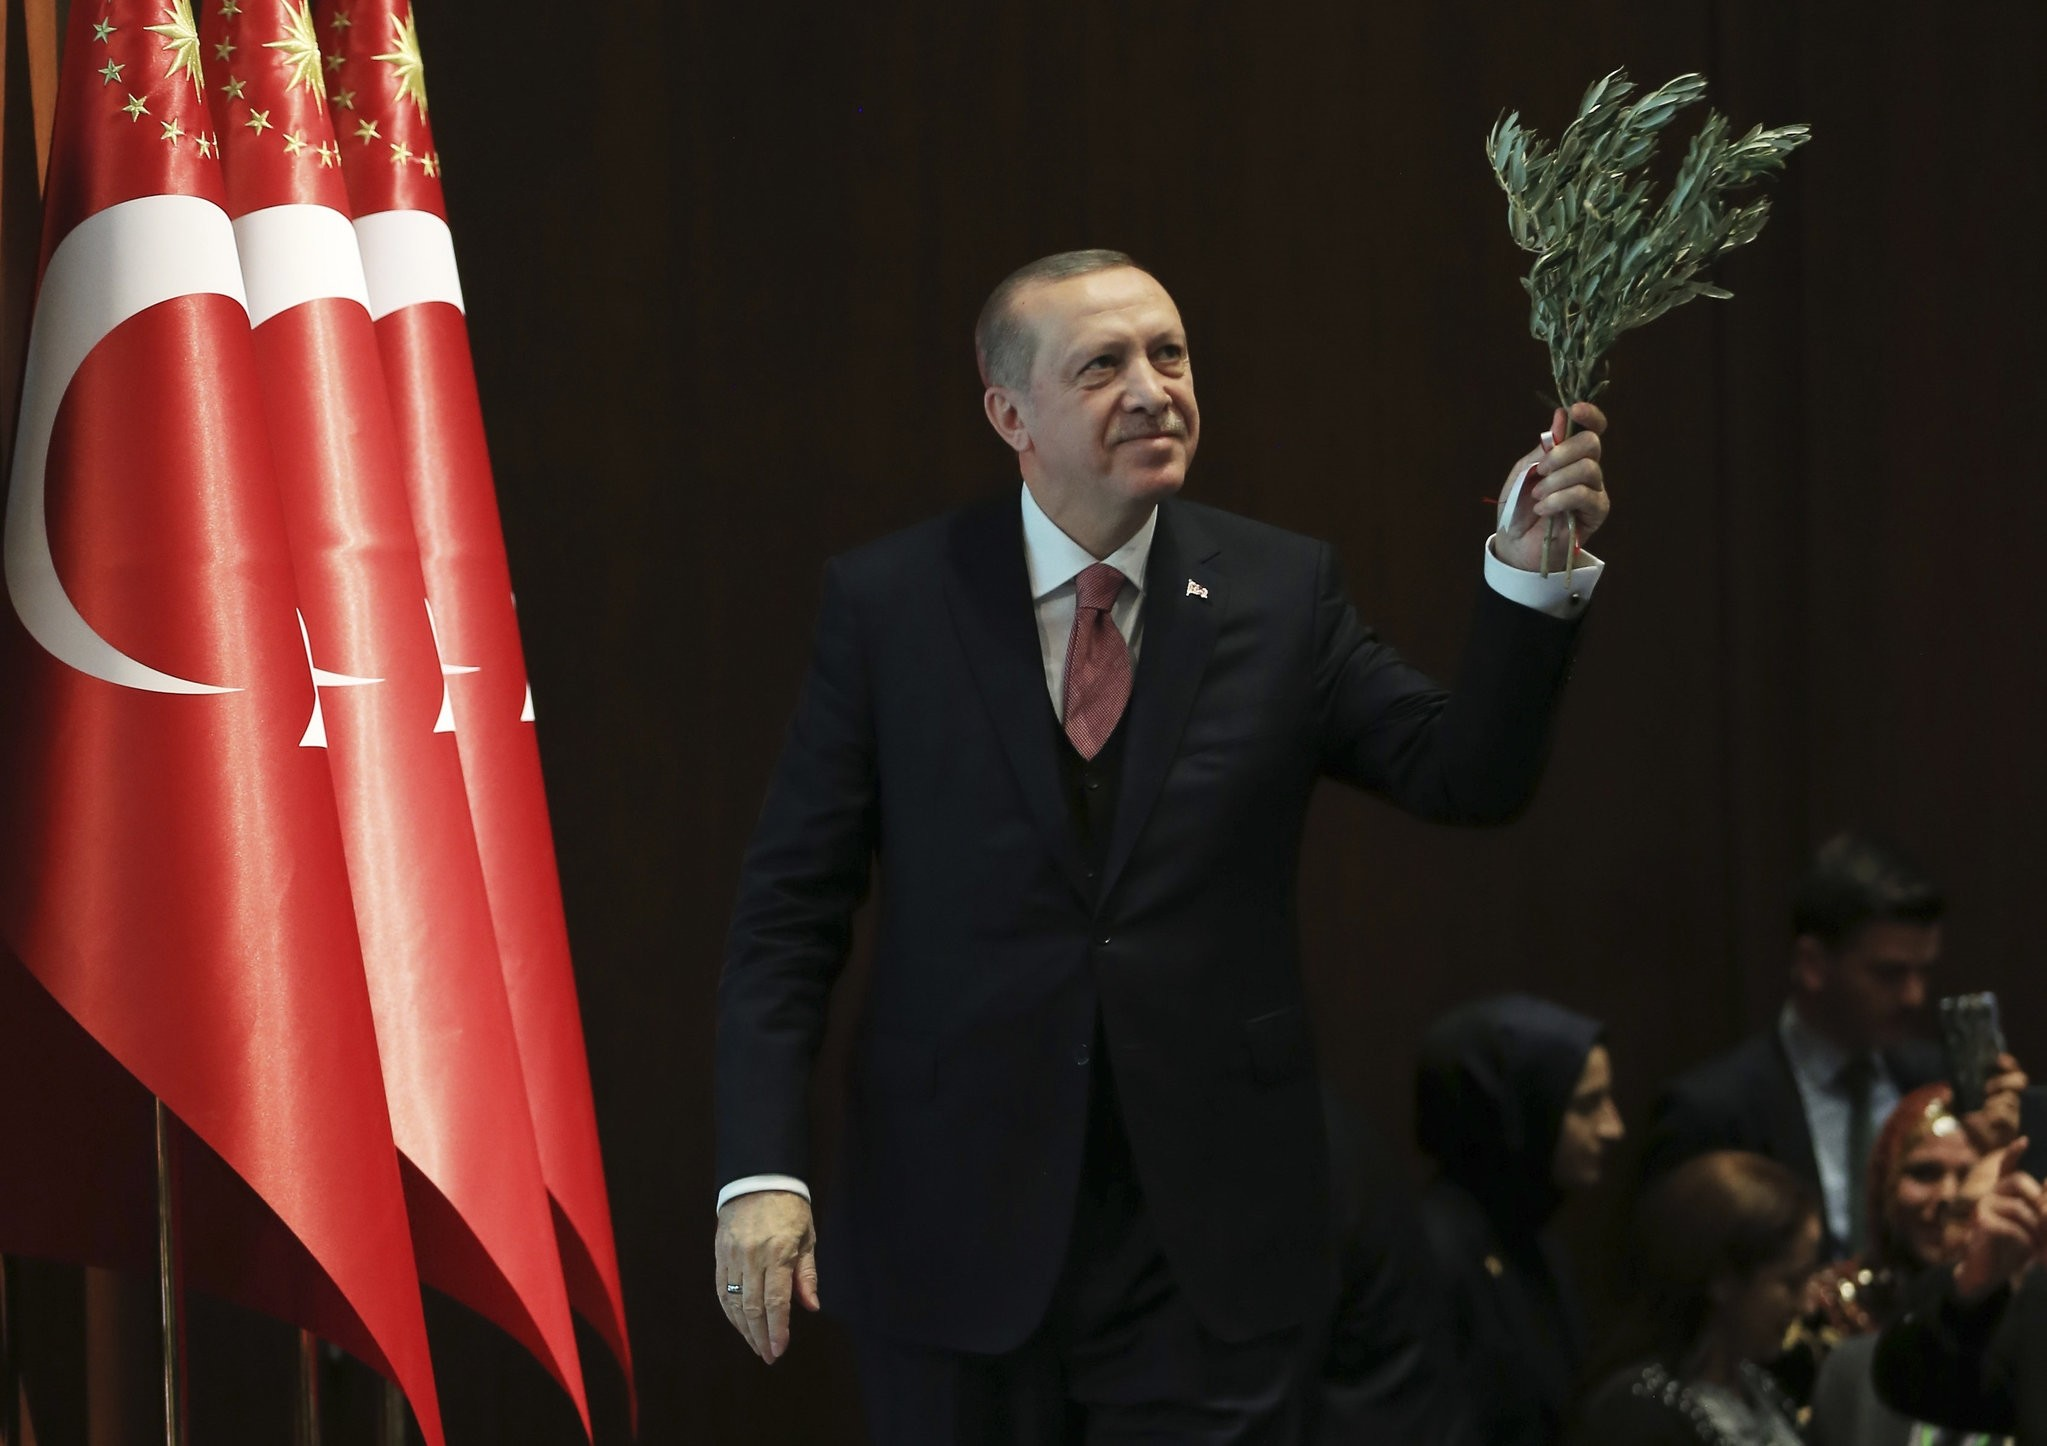 President Recep Tayyip Erdou011fan holds an olive branch as he goes on stage to deliver a speech in Ankara.